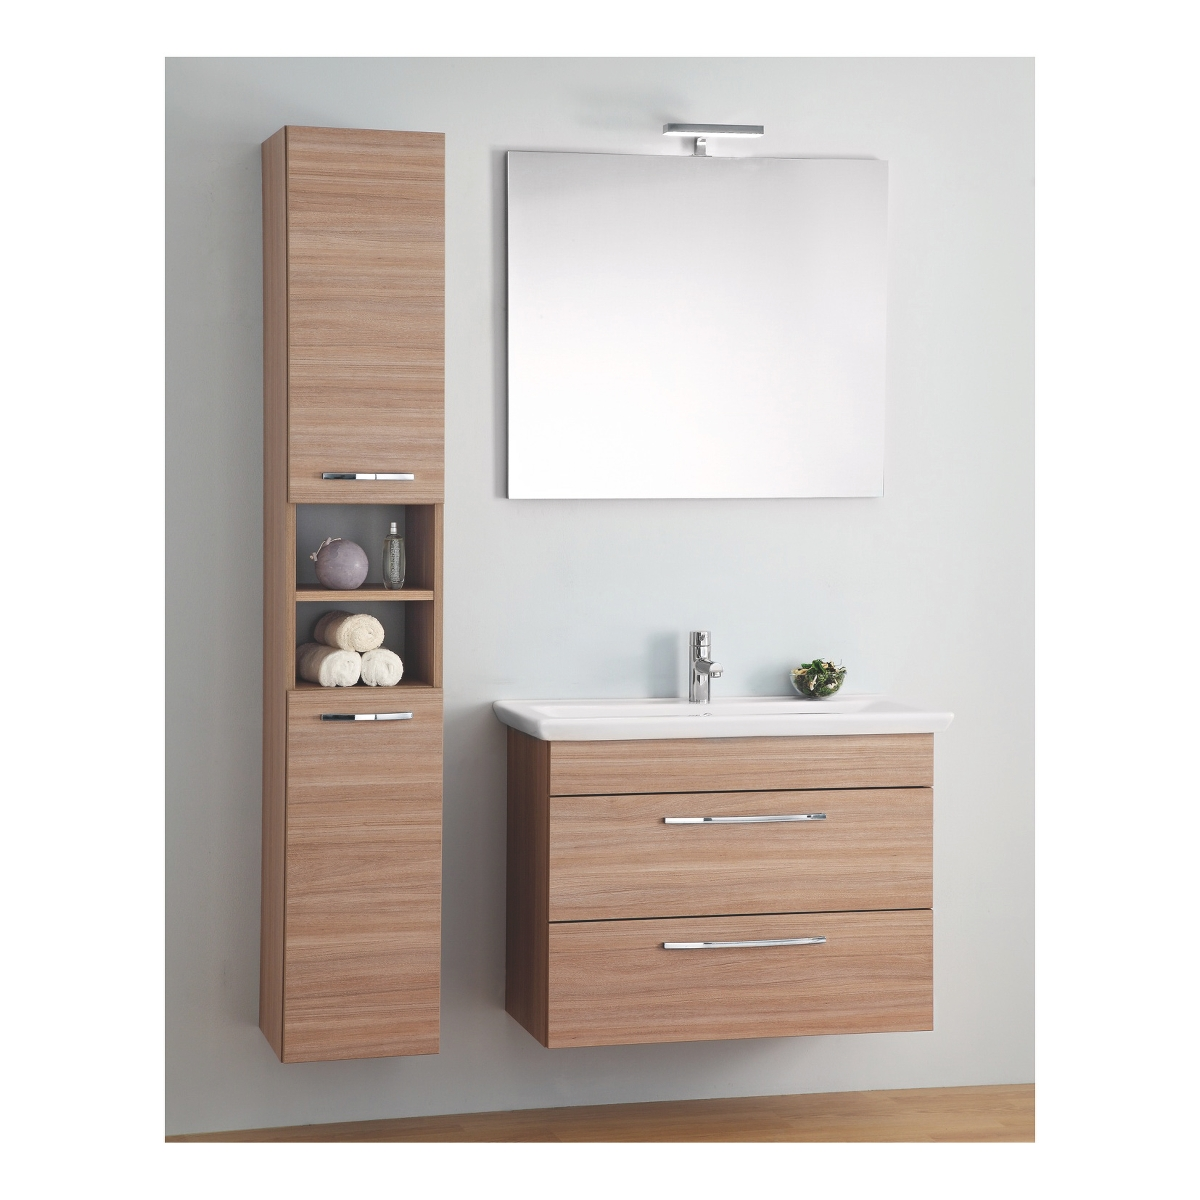 Leroy merlin mobile bagno gi 115 mobili bagno bathrooms pinterest wood bathroom and - Armadietti bagno leroy merlin ...